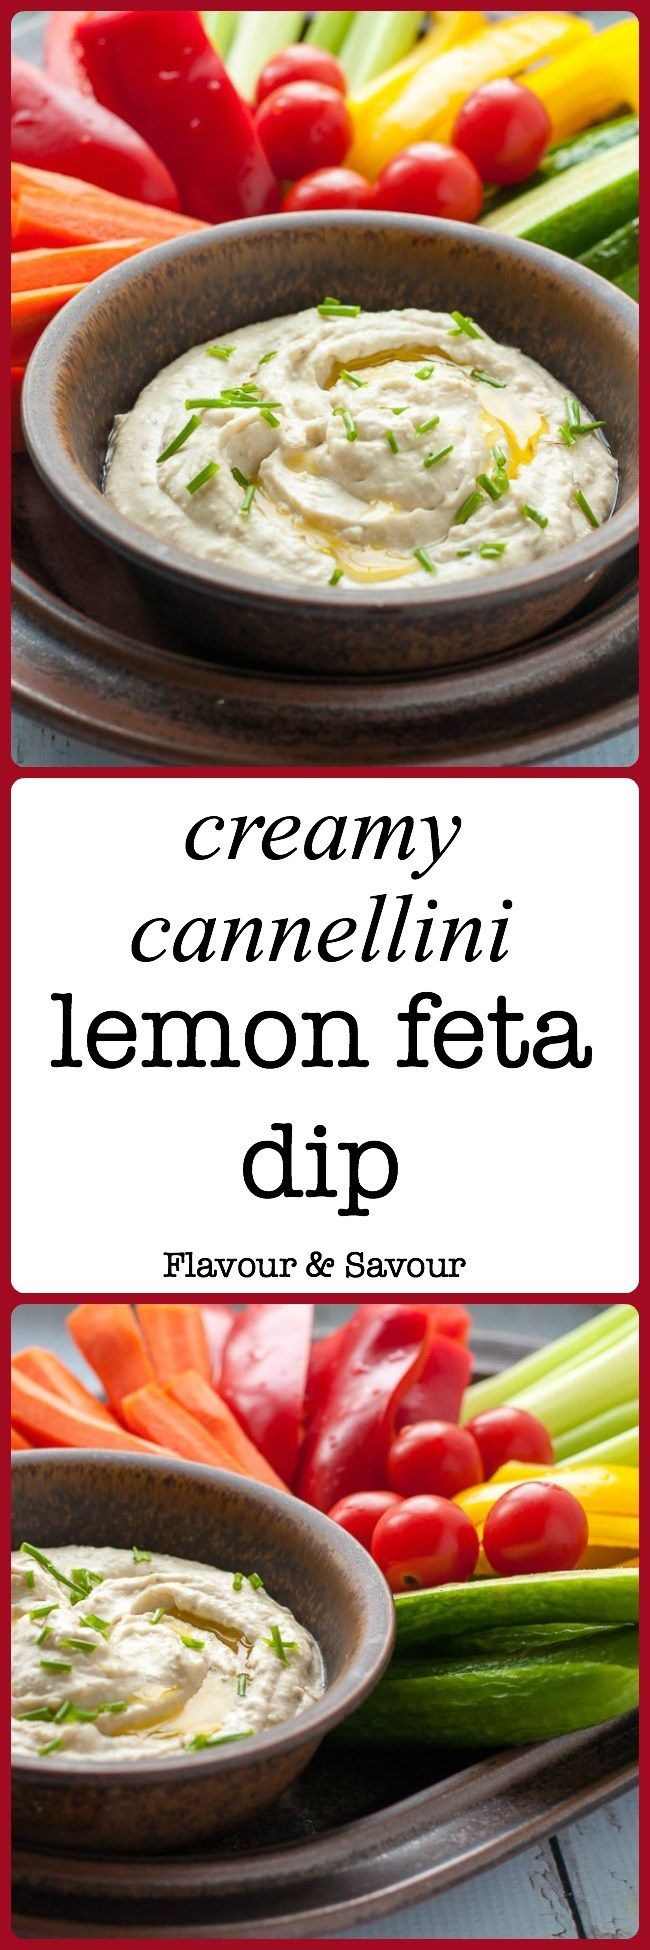 Pin this Creamy Cannellini Lemon Feta Dip recipe for your next get-together or holiday party. It's similar to hummus, but made without chickpeas! Blend white beans (cannellini beans) feta, and lemon together to make this popular healthy dip for veggies, pita bread or crackers. |www.flavourandsavour.com